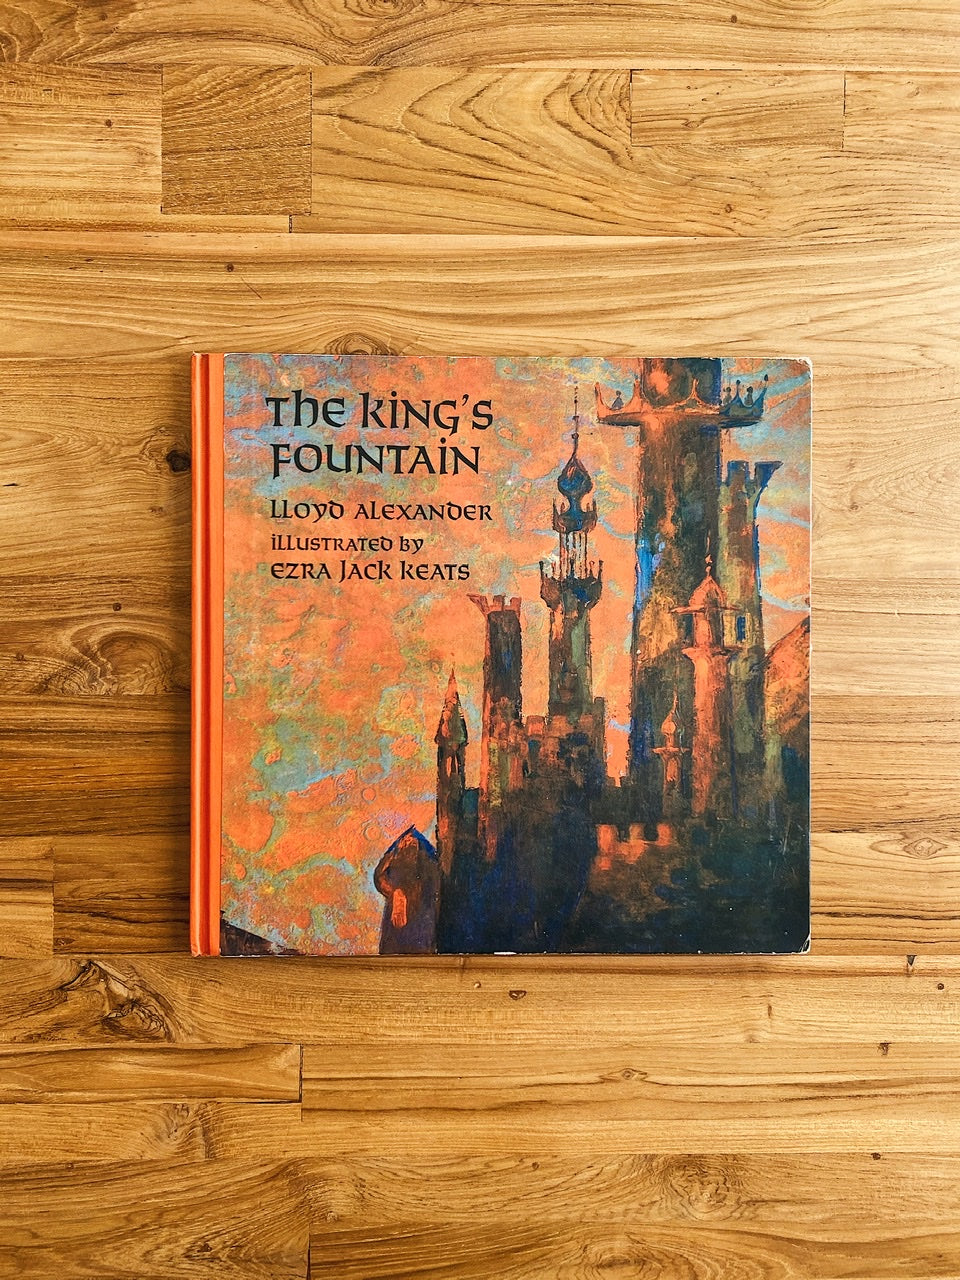 Vintage 1971 The King's Fountain by Lloyd Alexander & Ezra Jack Keats | *First Edition, 1971*